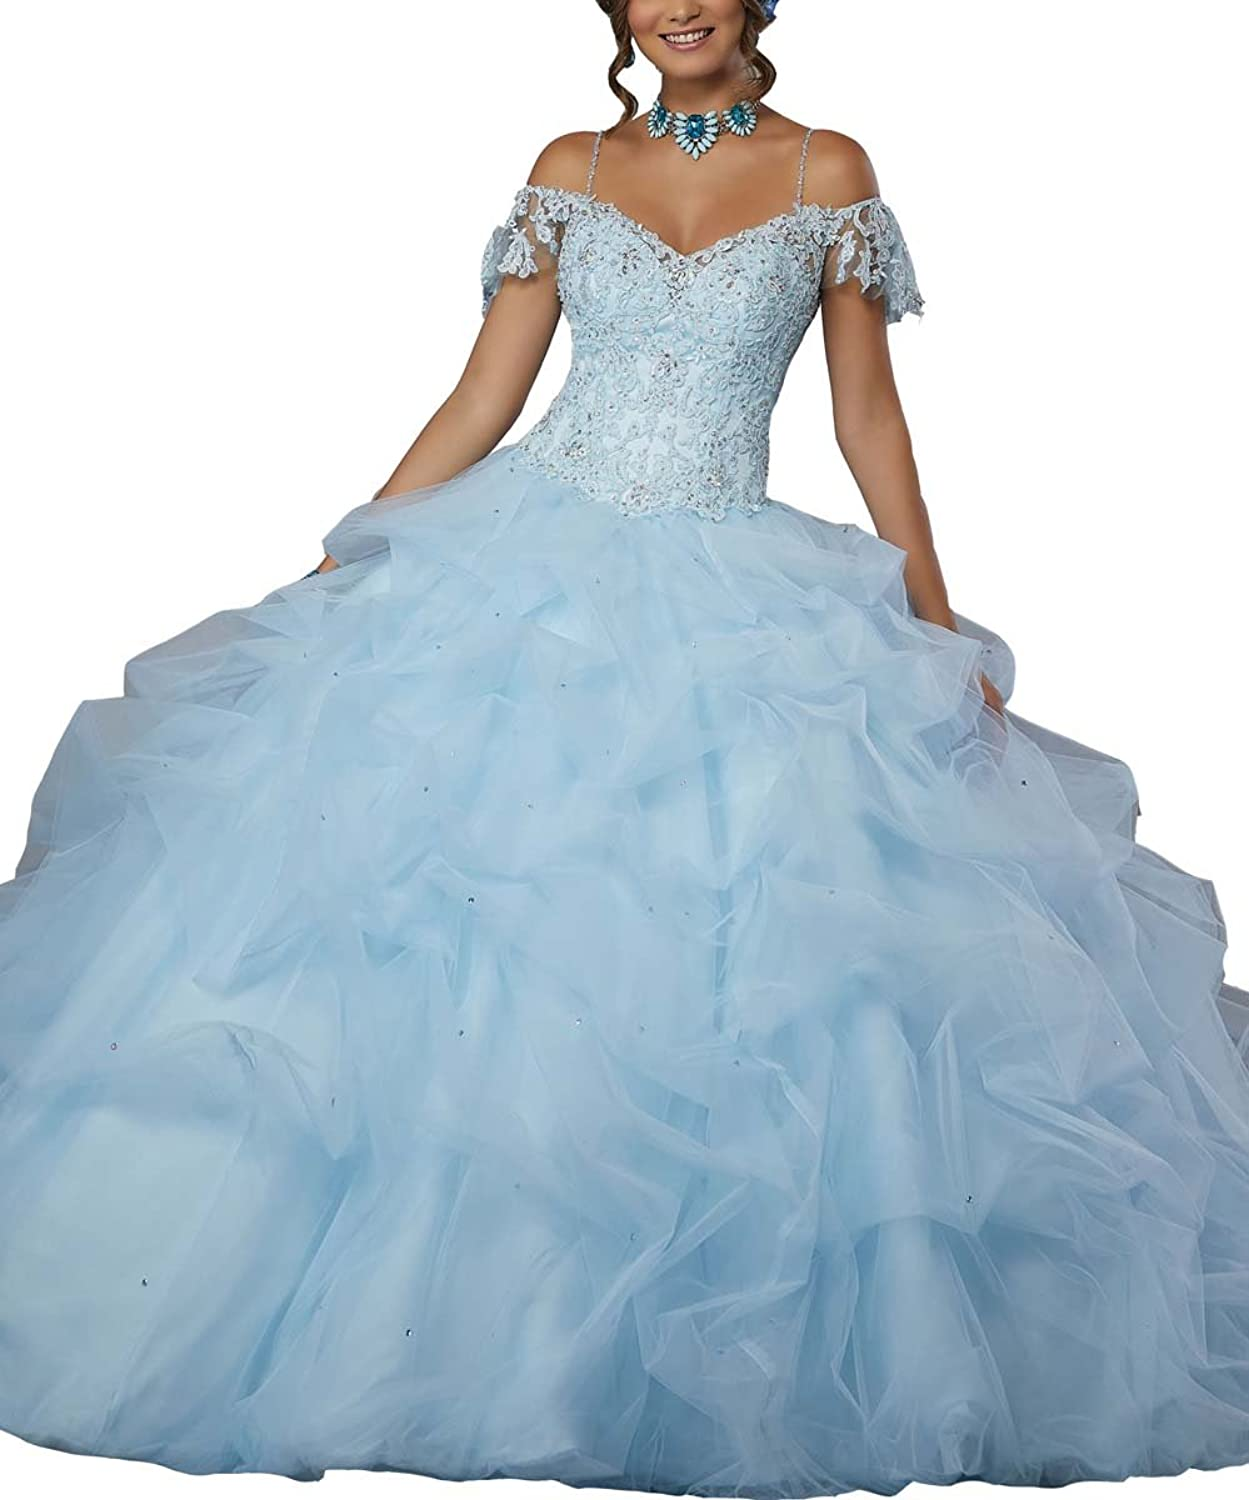 LastBridal Women Lace Appliques Organza Spaghetti Straps Sweet 16 Ball Gown Quinceanera Dresses with Crystal LB0007 bluee